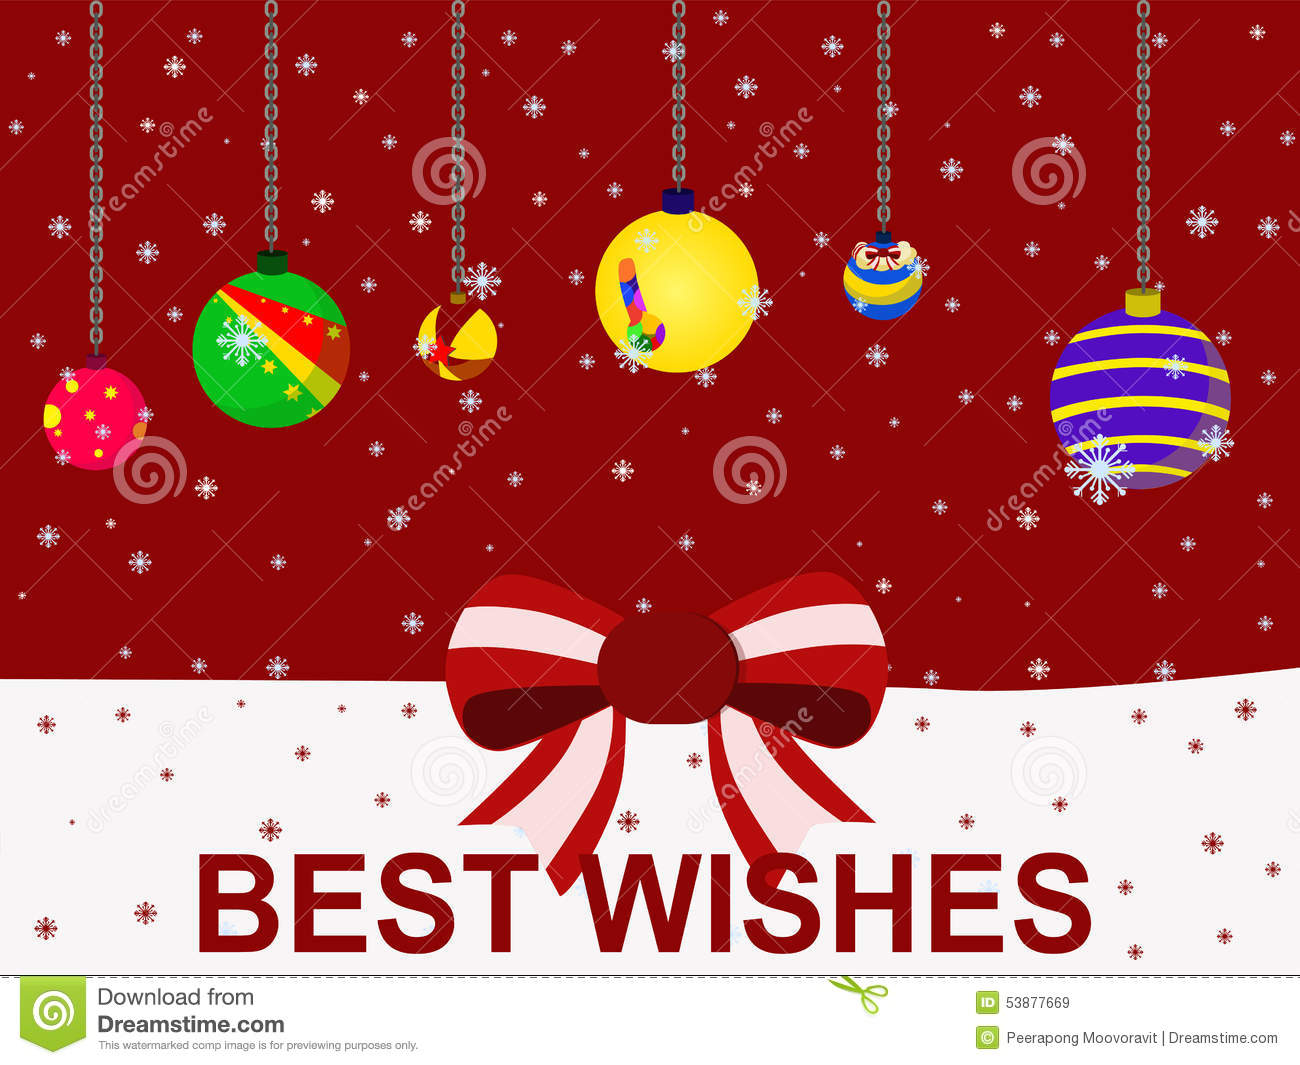 vector christmas holiday festival best wishes balloon concept - Best Wishes For Christmas